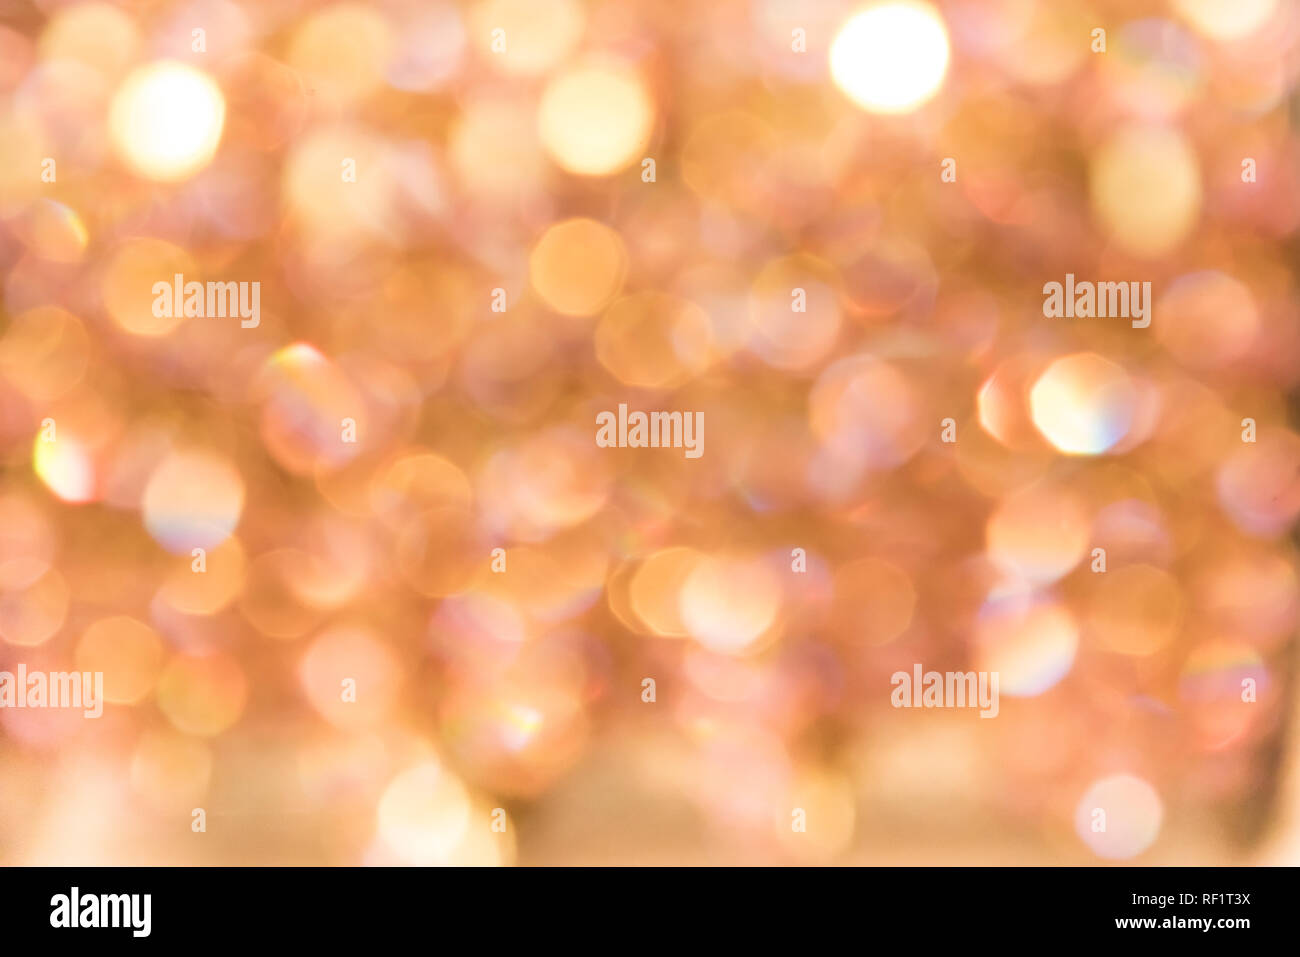 Bokeh blur fairy texture of pearls and diamonds shimmering in the light. - Stock Image